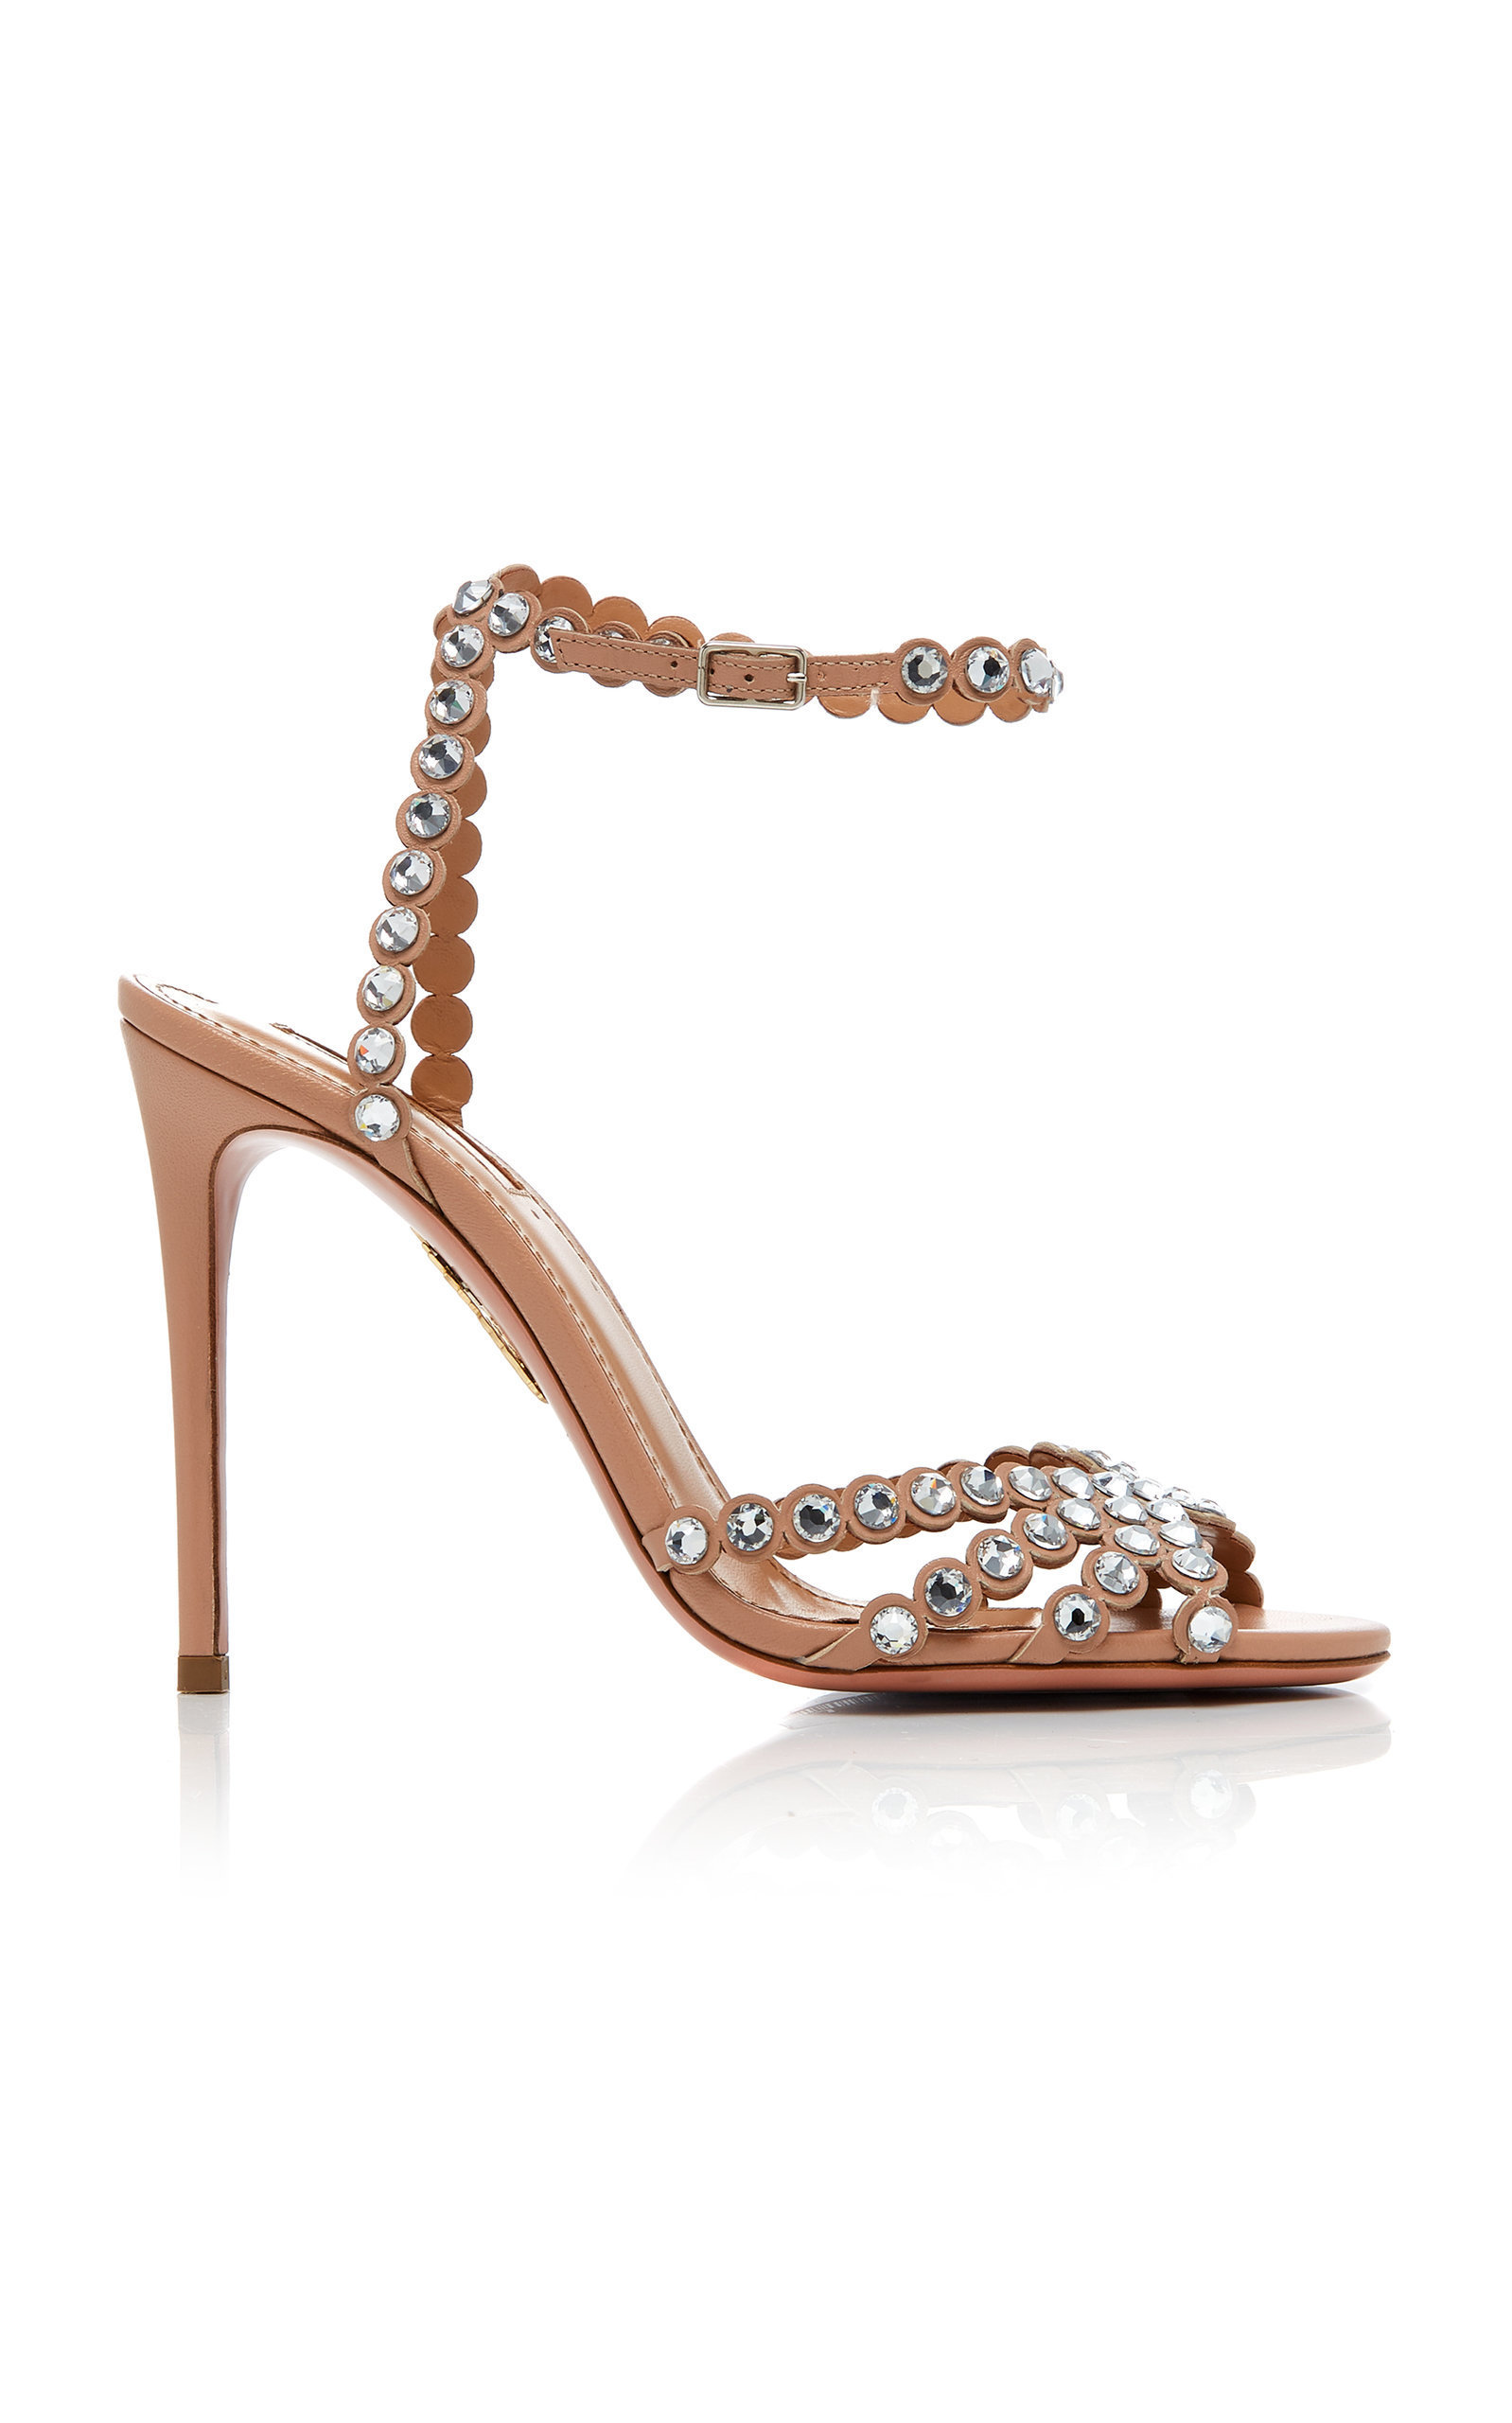 3f29c9812 Tequila Embellished Leather Sandals by AQUAZZURA Now Available on Moda  Operandi